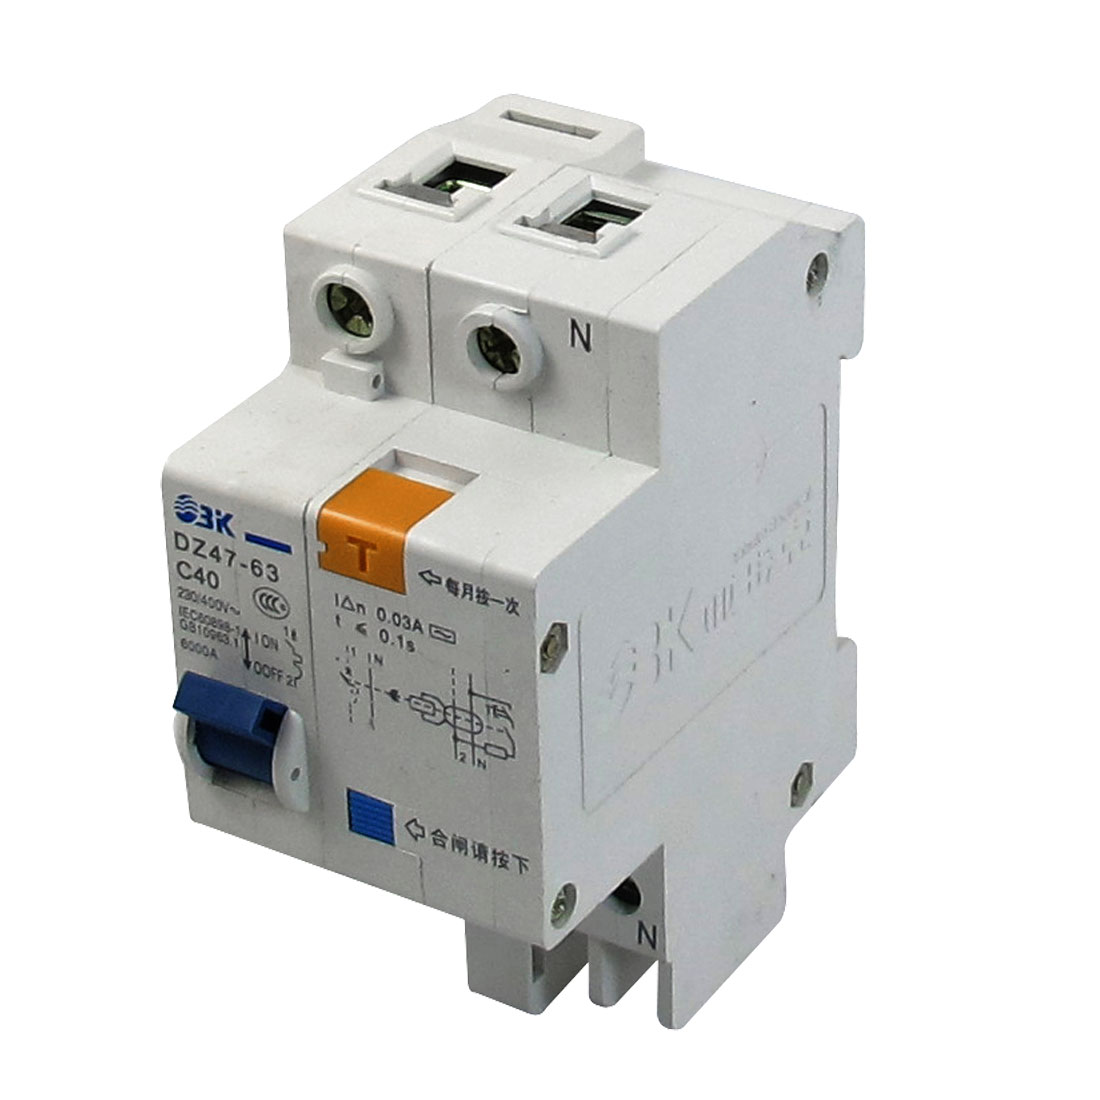 AC 230V/400V 40A 6000A Breaking Capacity DIN Rail 1P+N Earth Leakage Circuit Breaker